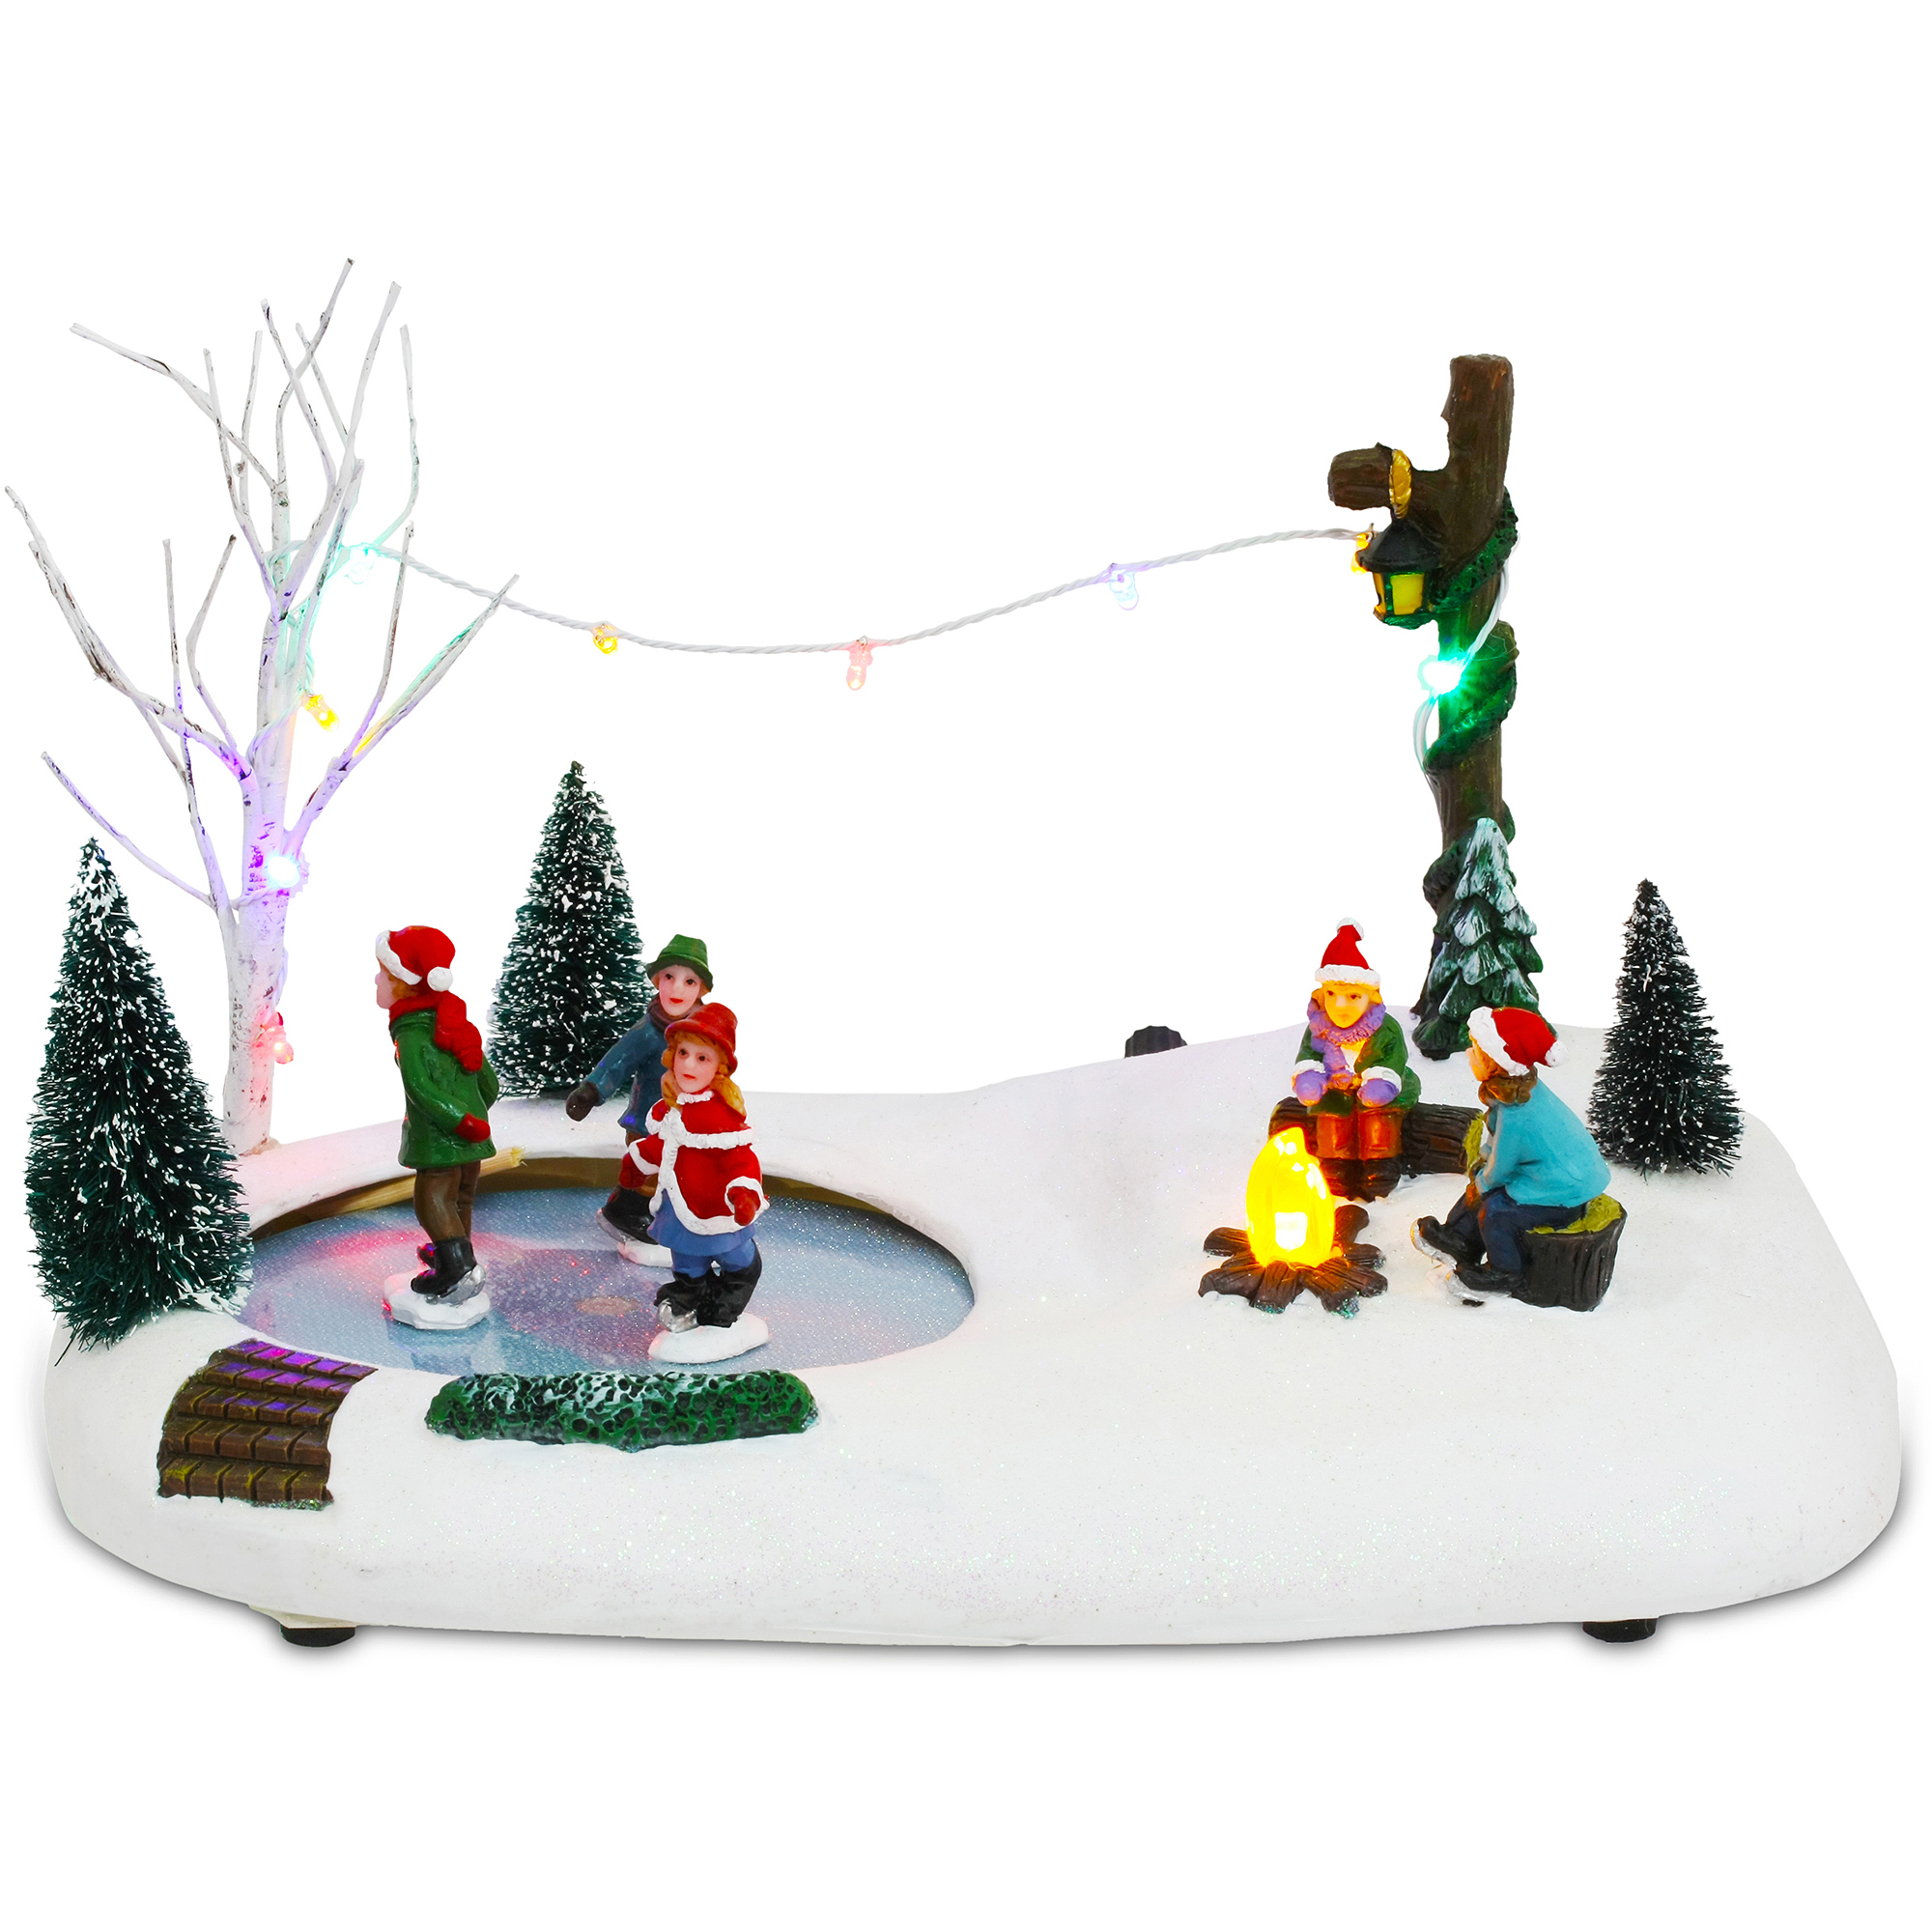 Christmas Ice Skating Pond Decoration | www.indiepedia.org